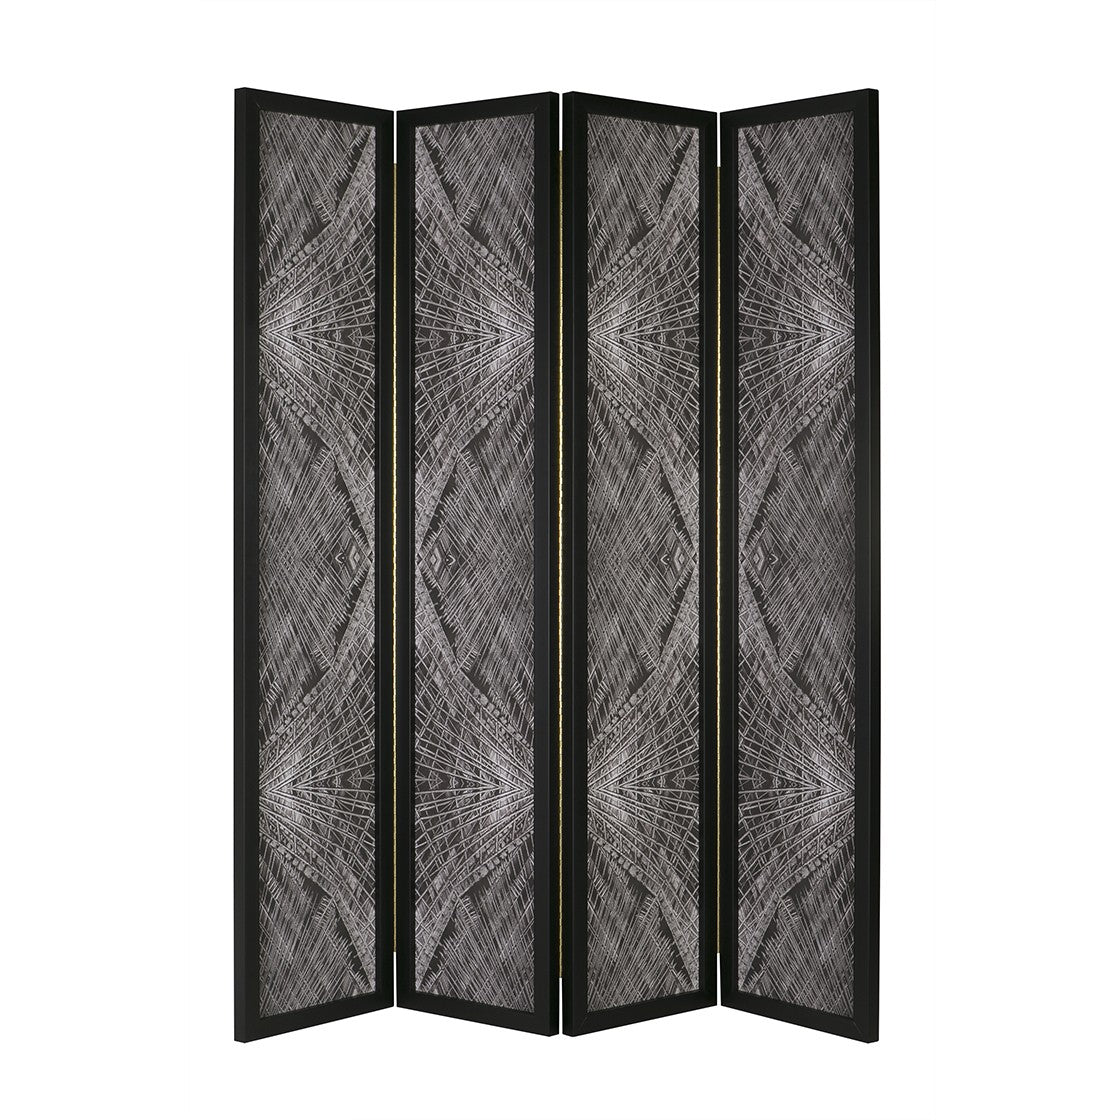 Revolution Industrielle Screen Folding Screen